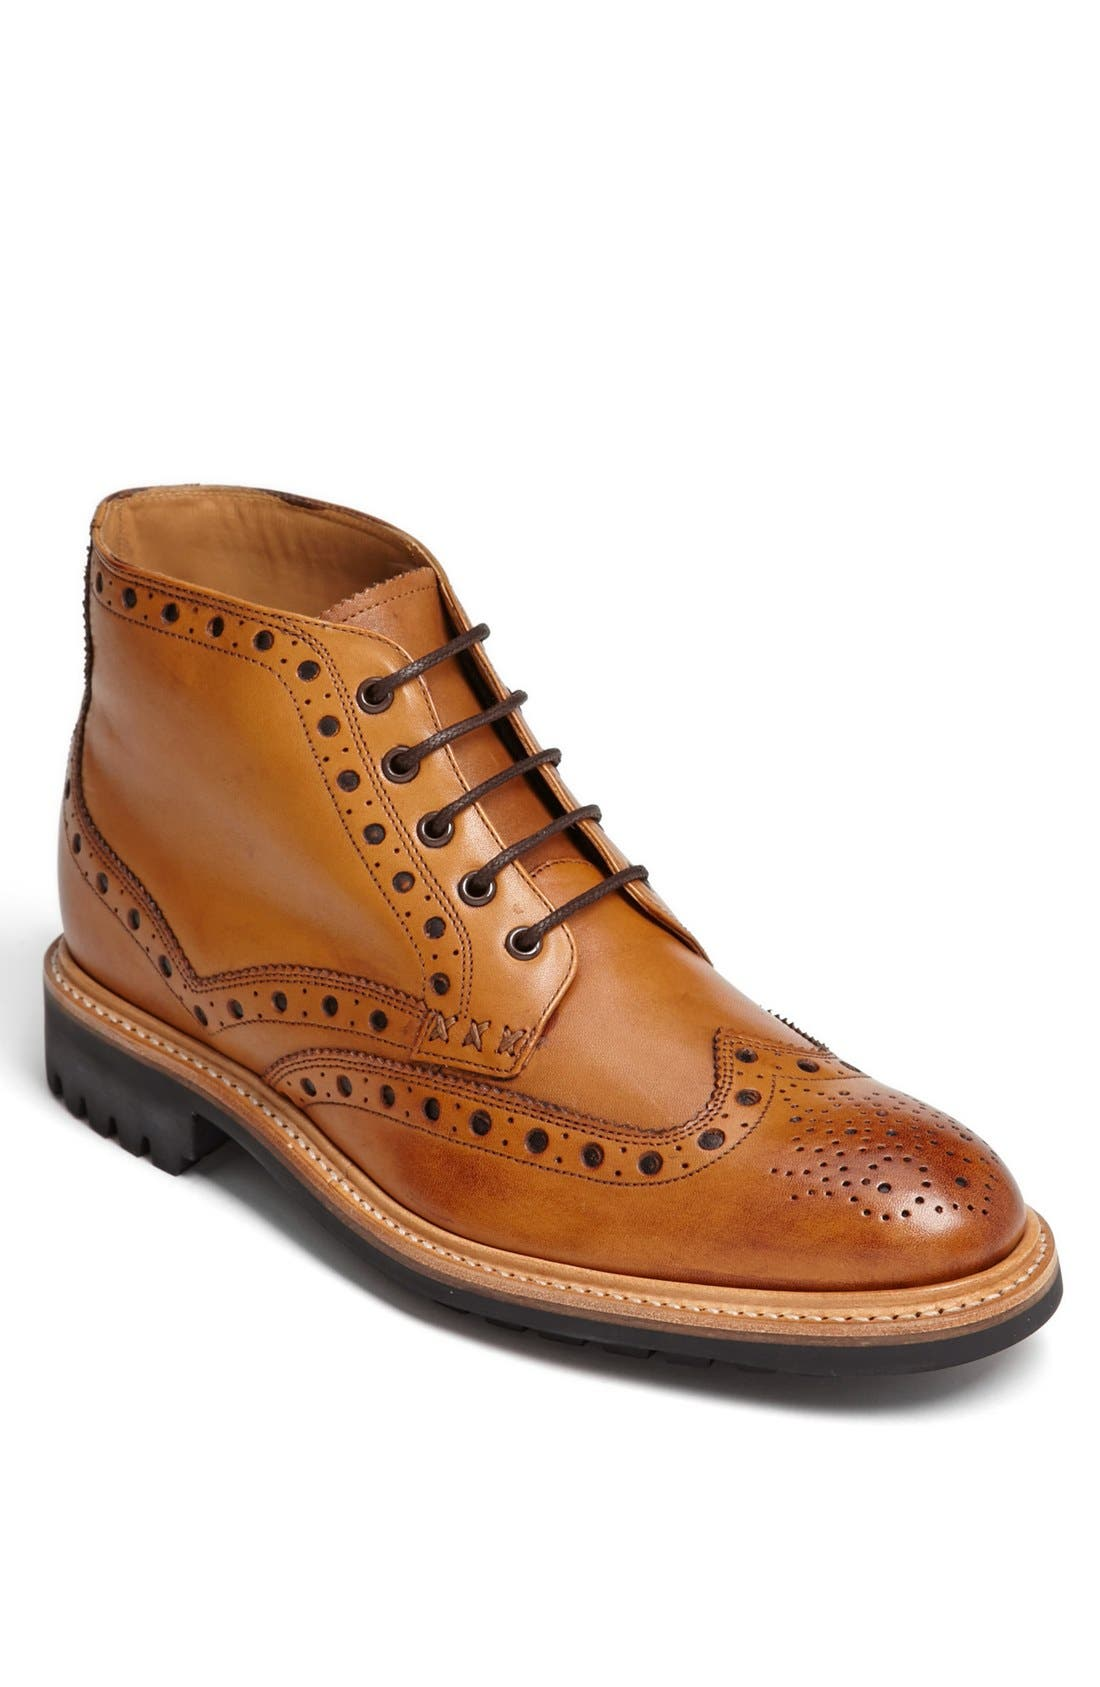 Alternate Image 1 Selected - Oliver Sweeney 'Lawshall' Wingtip Boot